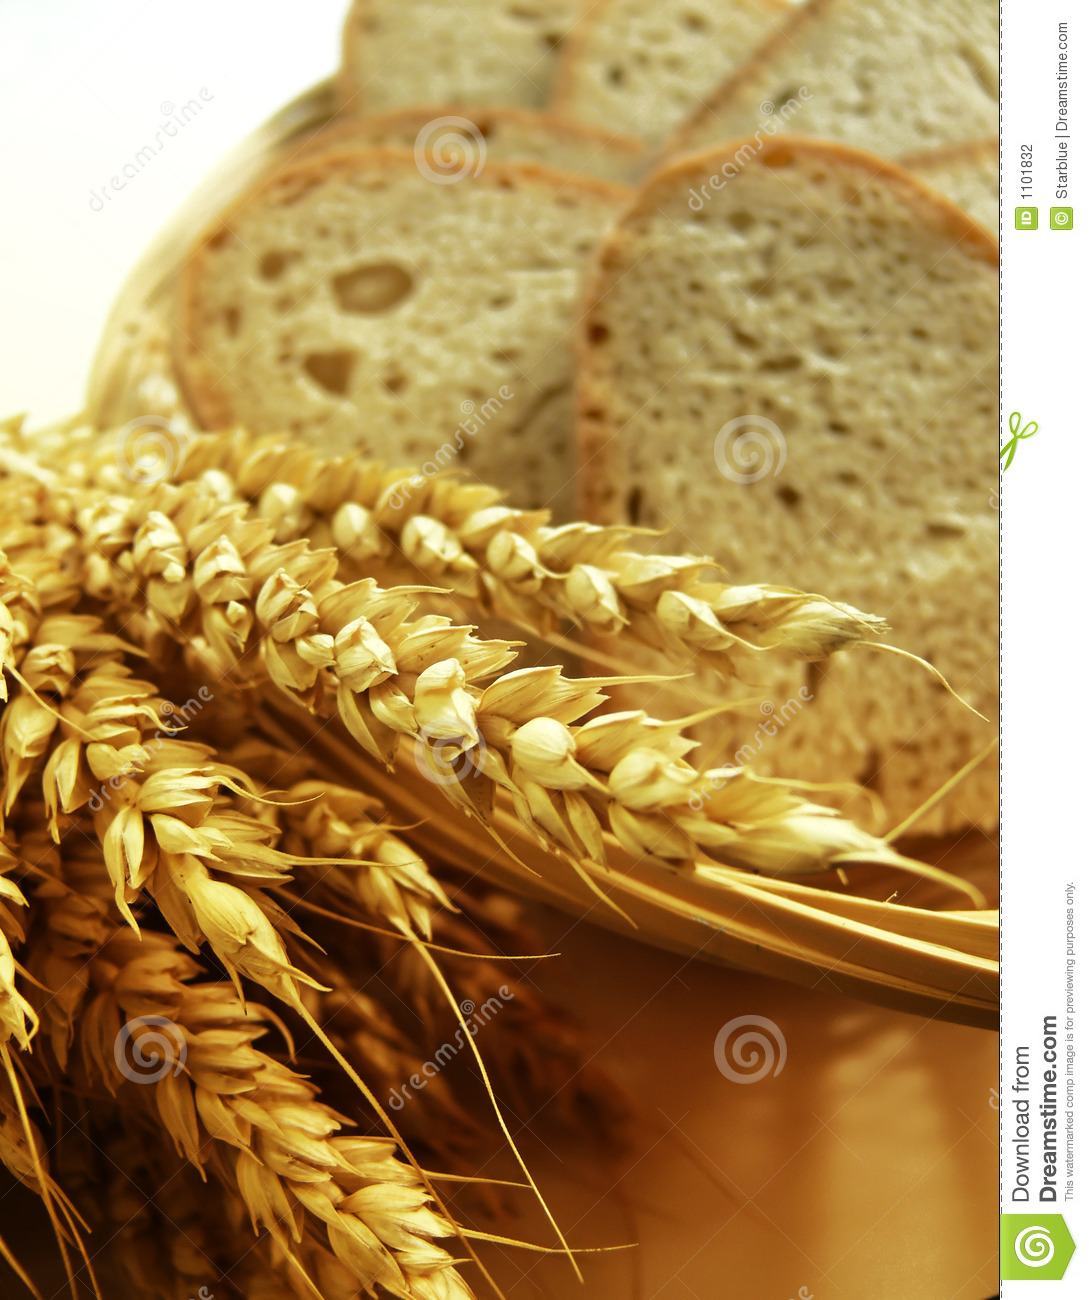 Bread and corn